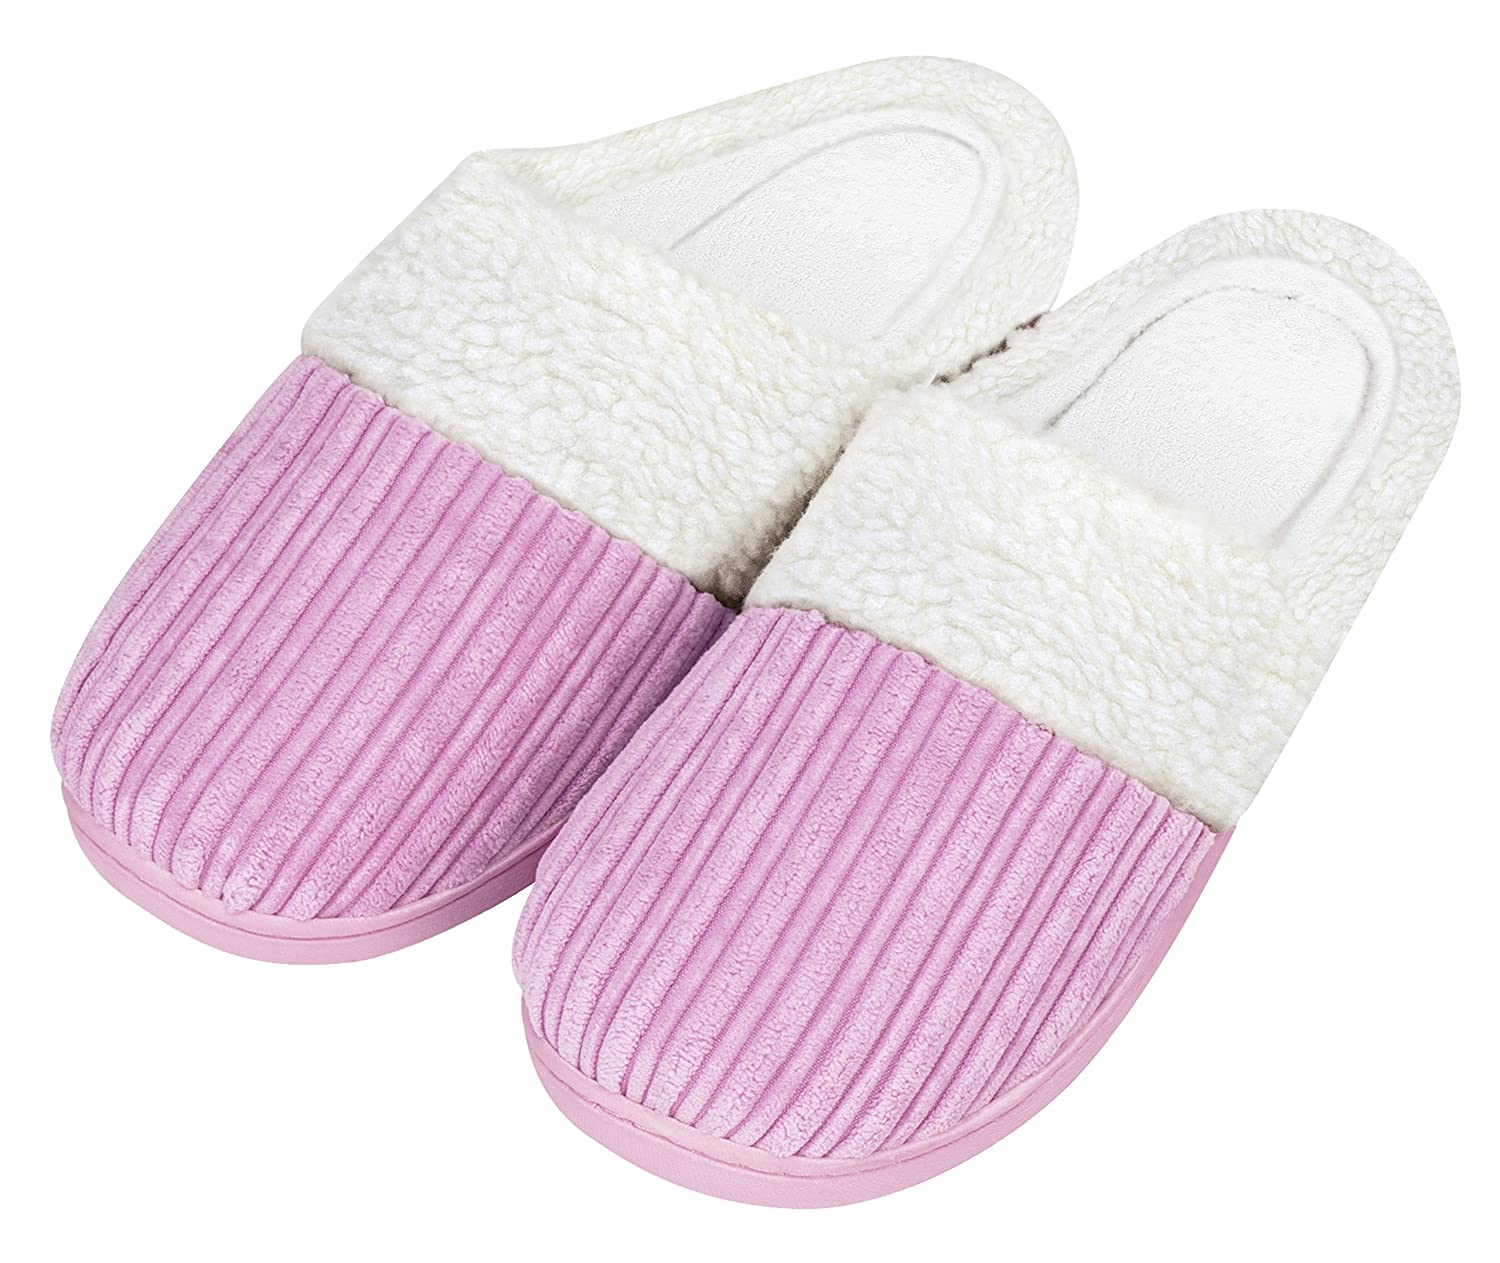 NY Threads Comfy Soft Coral Fleece Memory Foam Slippers for Women